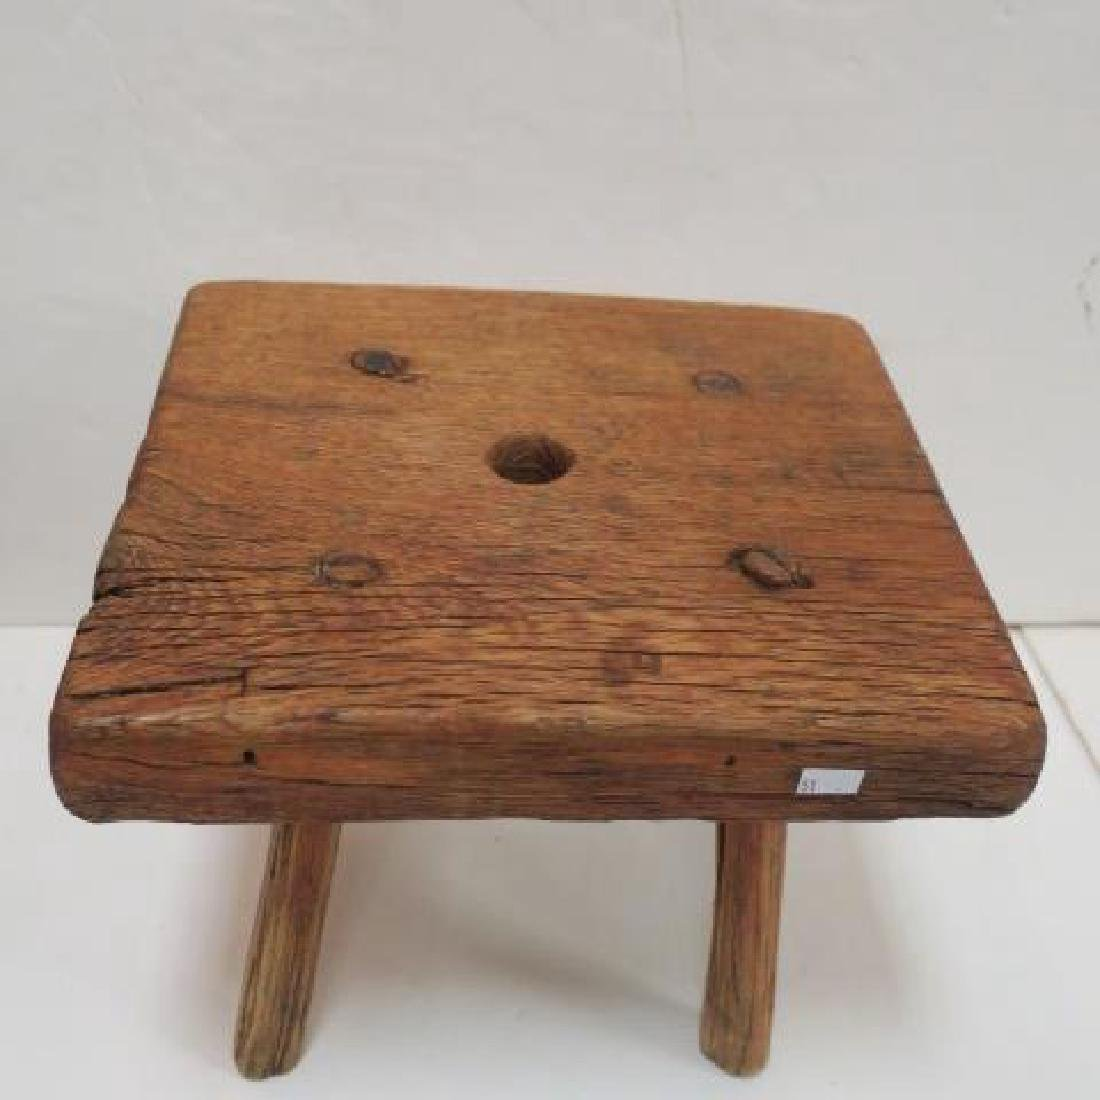 Oak Handmade Drawer and Four Legged Stool: - 2